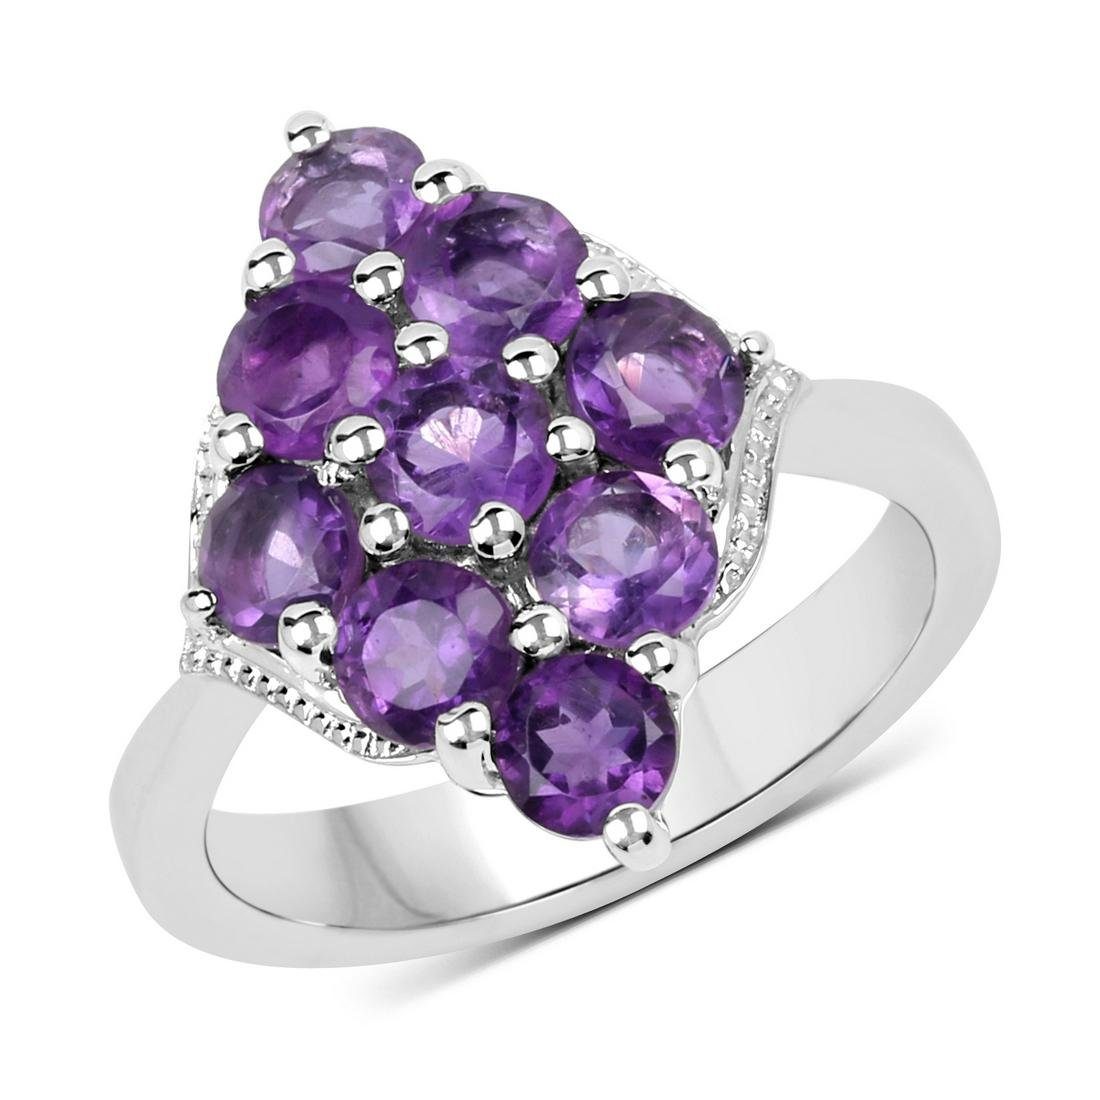 APP: 0.3k Gorgeous Sterling Silver 2.16CT Amethyst Ring